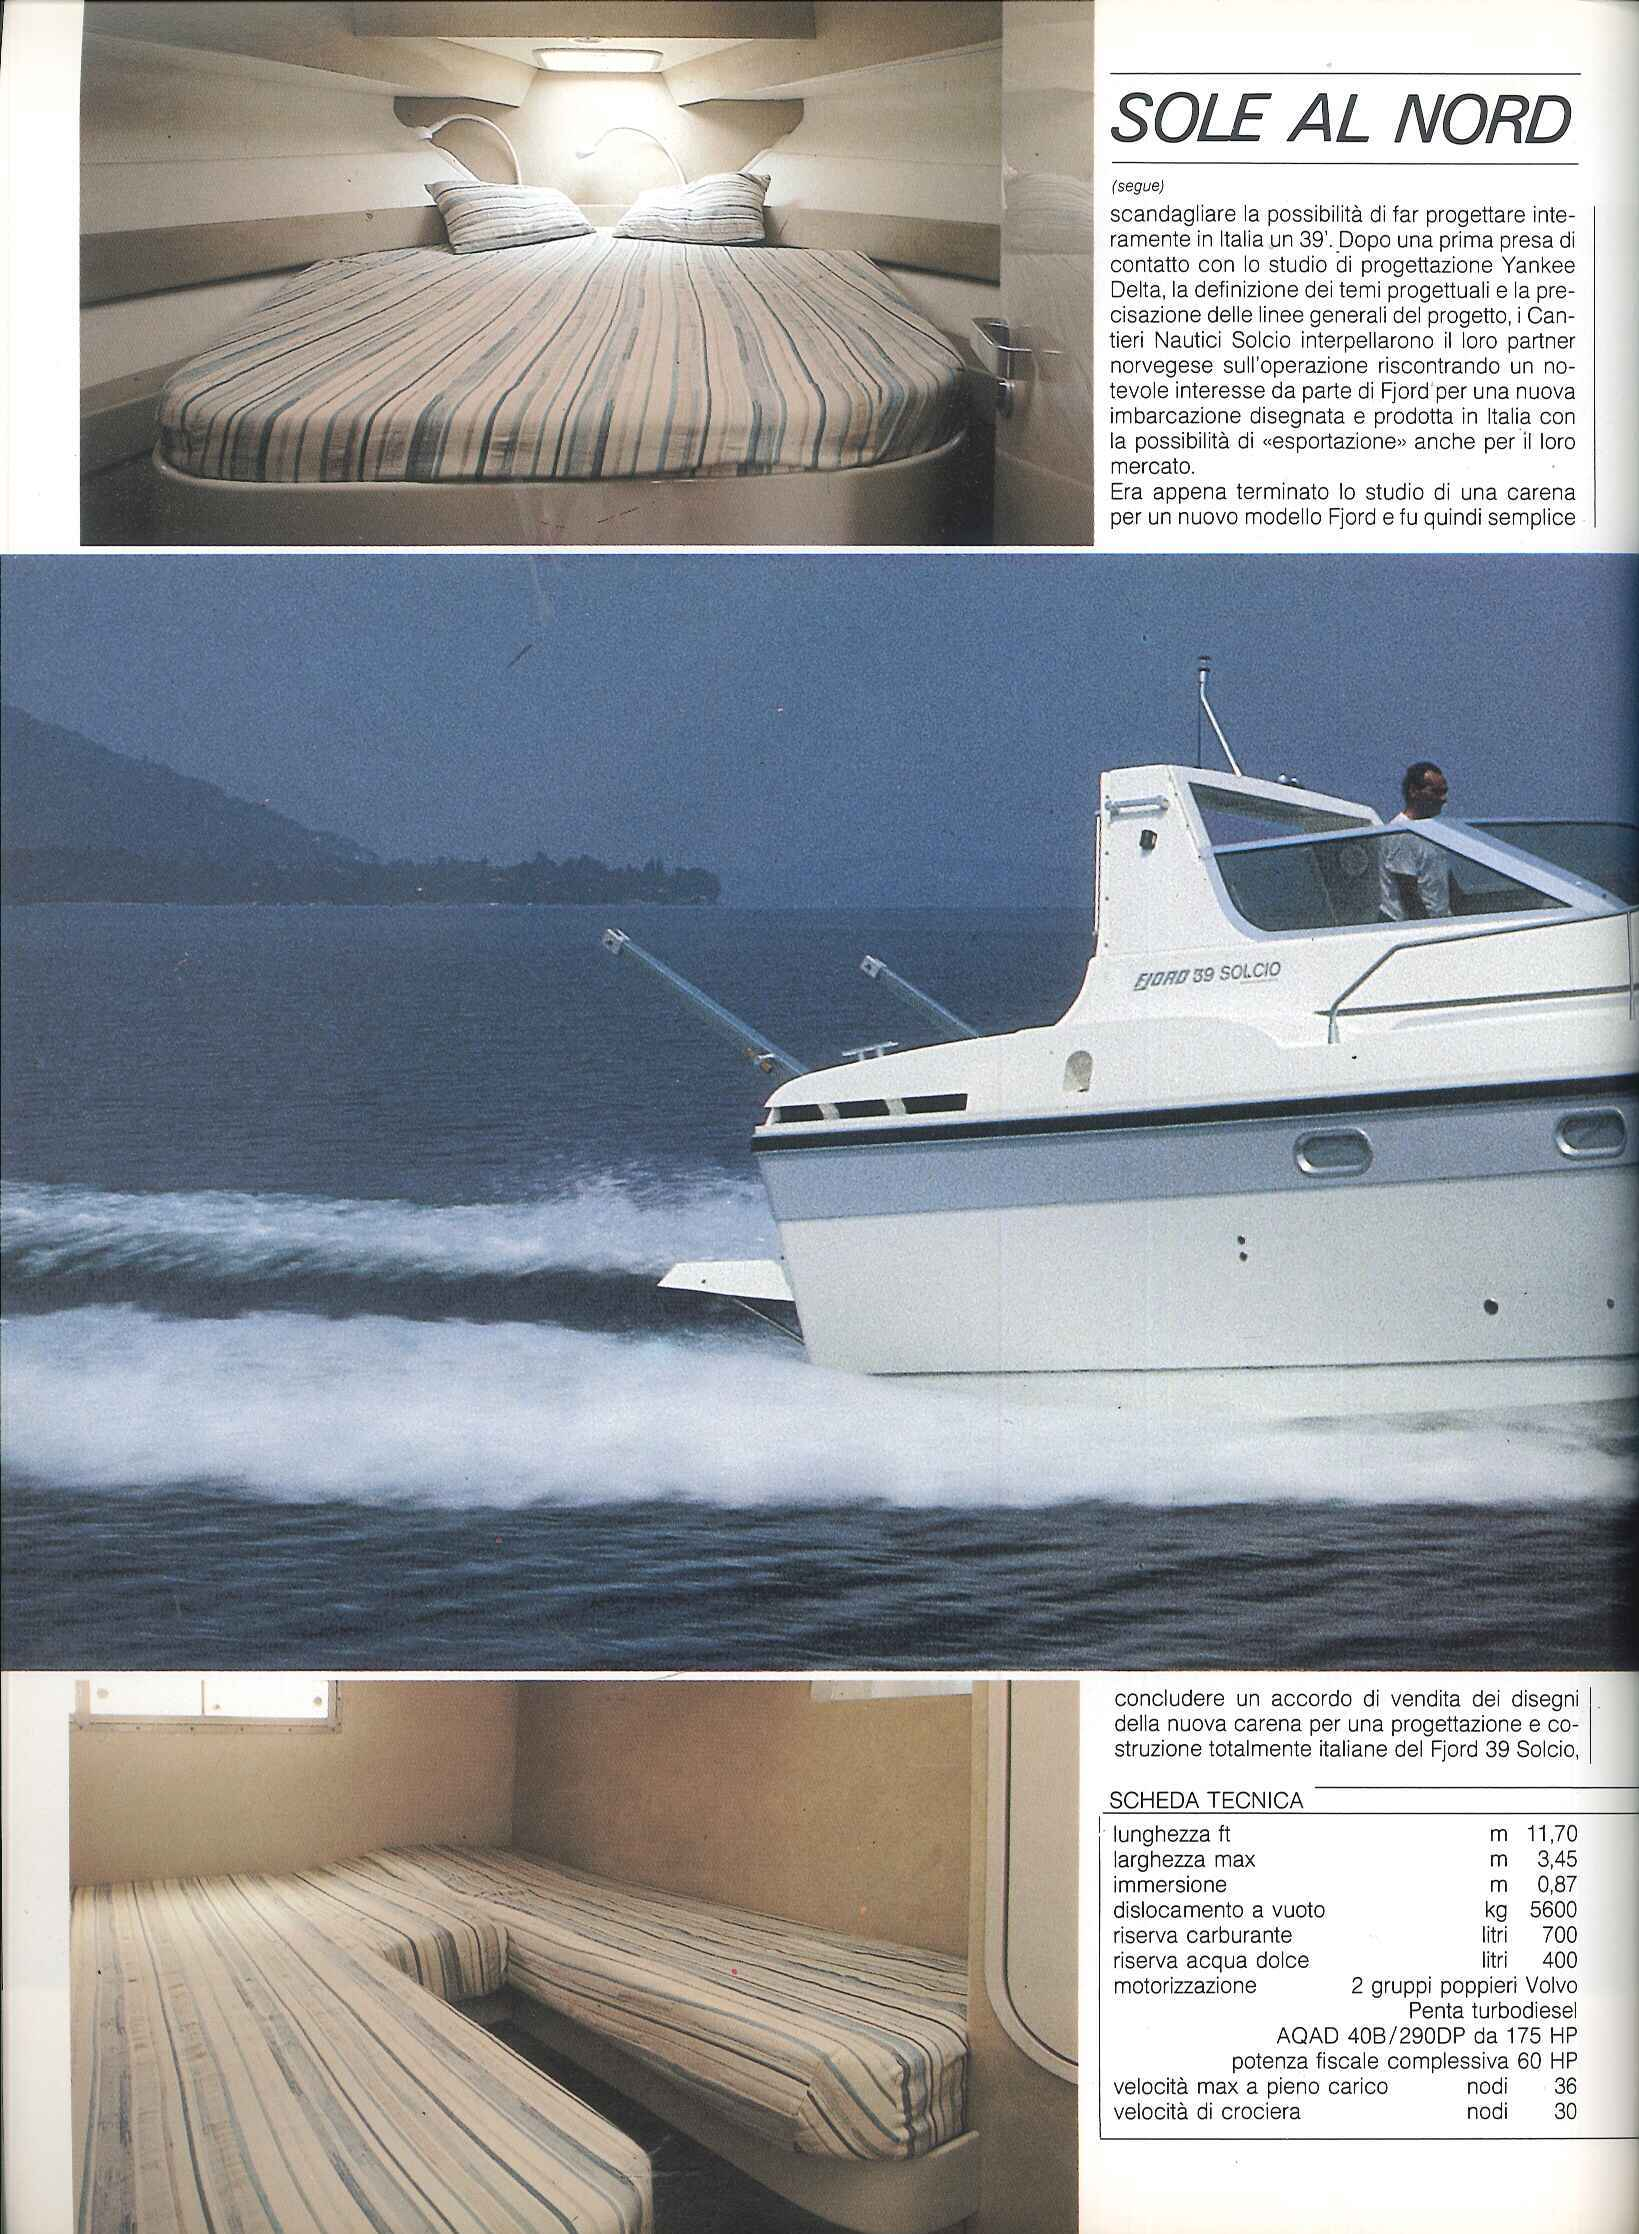 1986 09 PRESS FJORD 39 SOLCIO Uomo Mare n° 101 (26).jpg